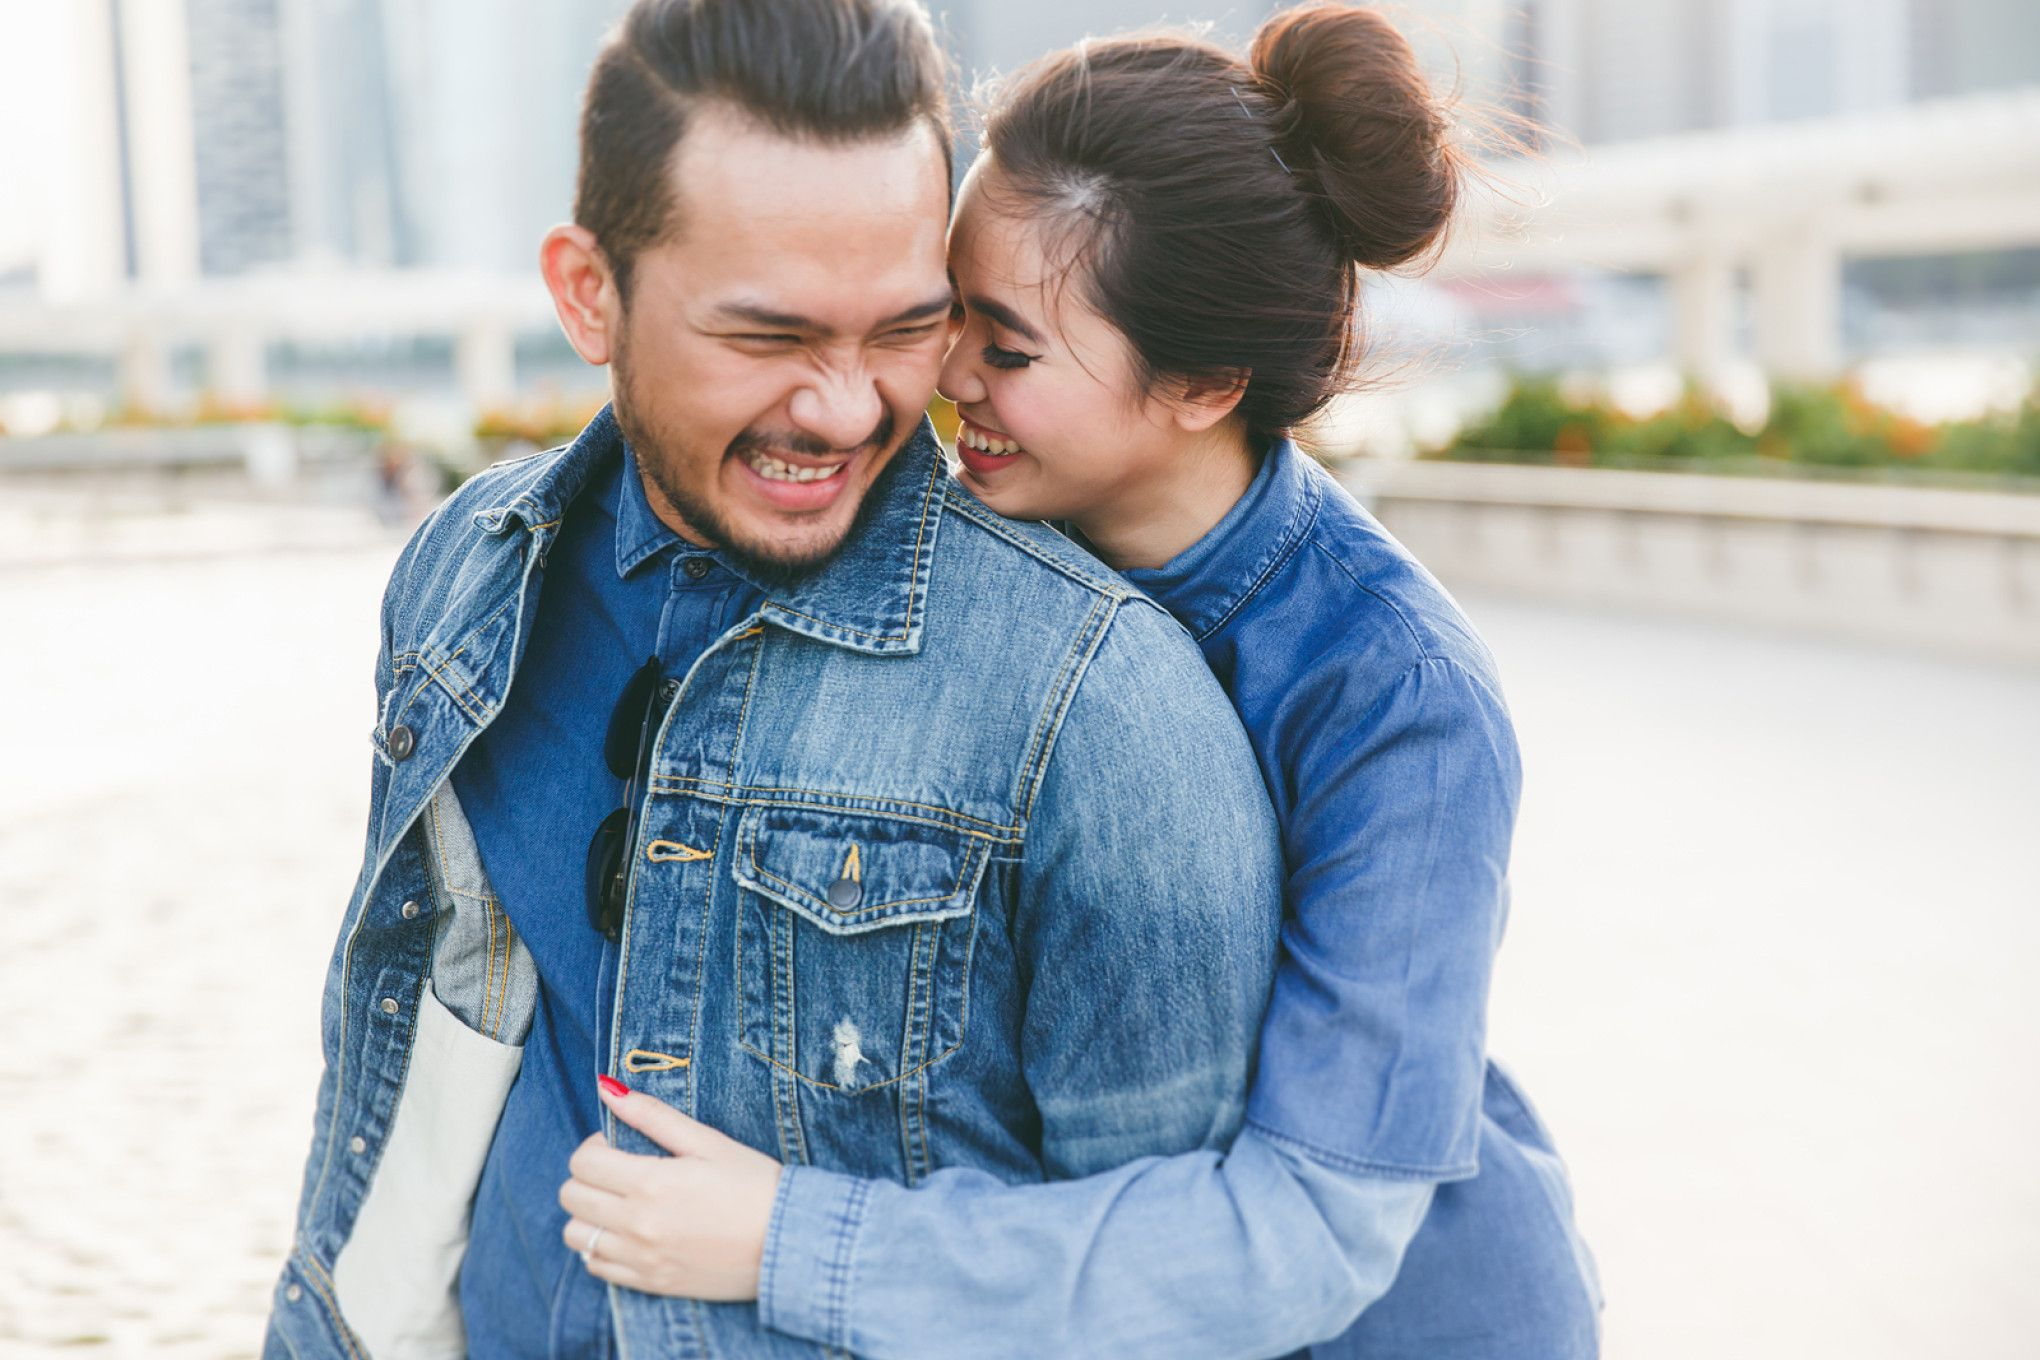 casual dating Singapore